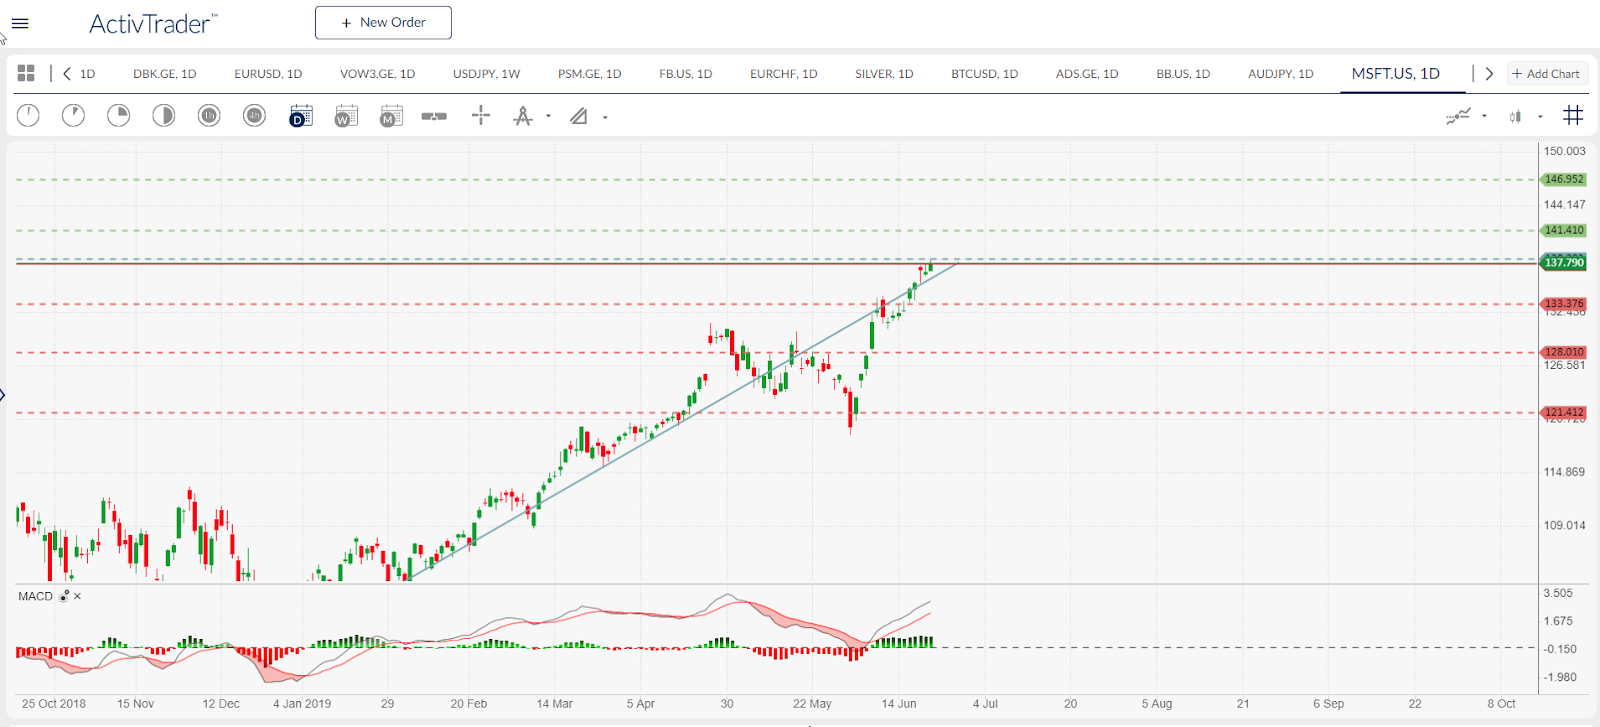 MSFT.US - daily chart. Source: ActivTrader